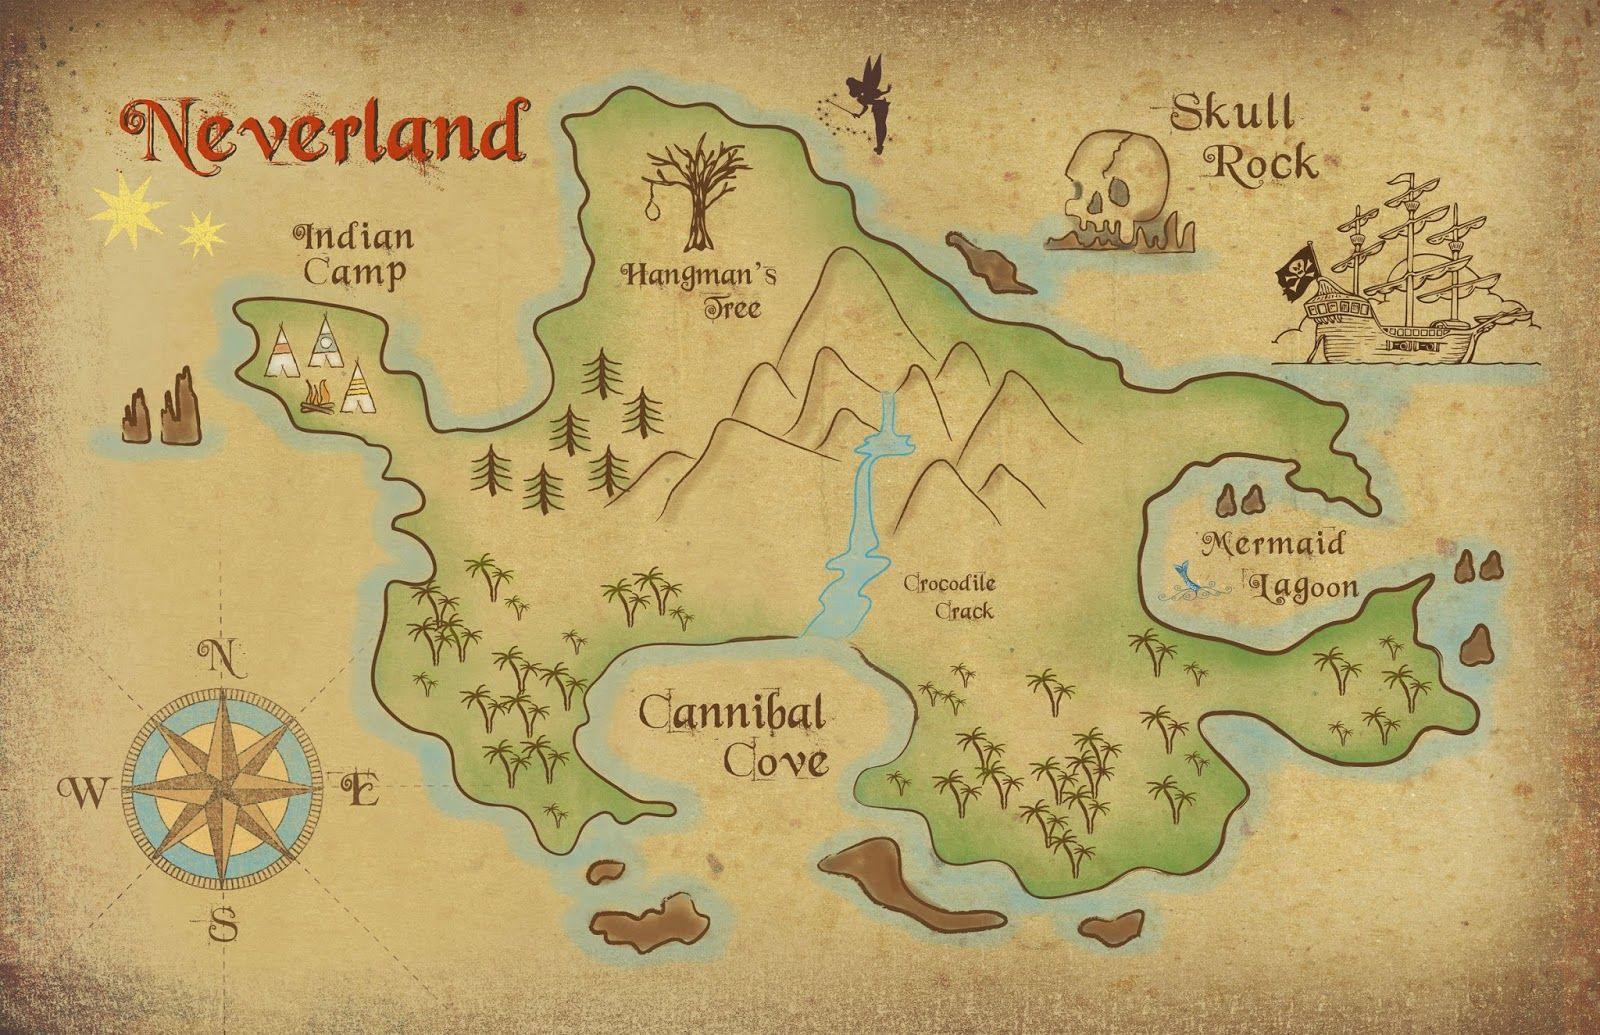 Neverland map download.